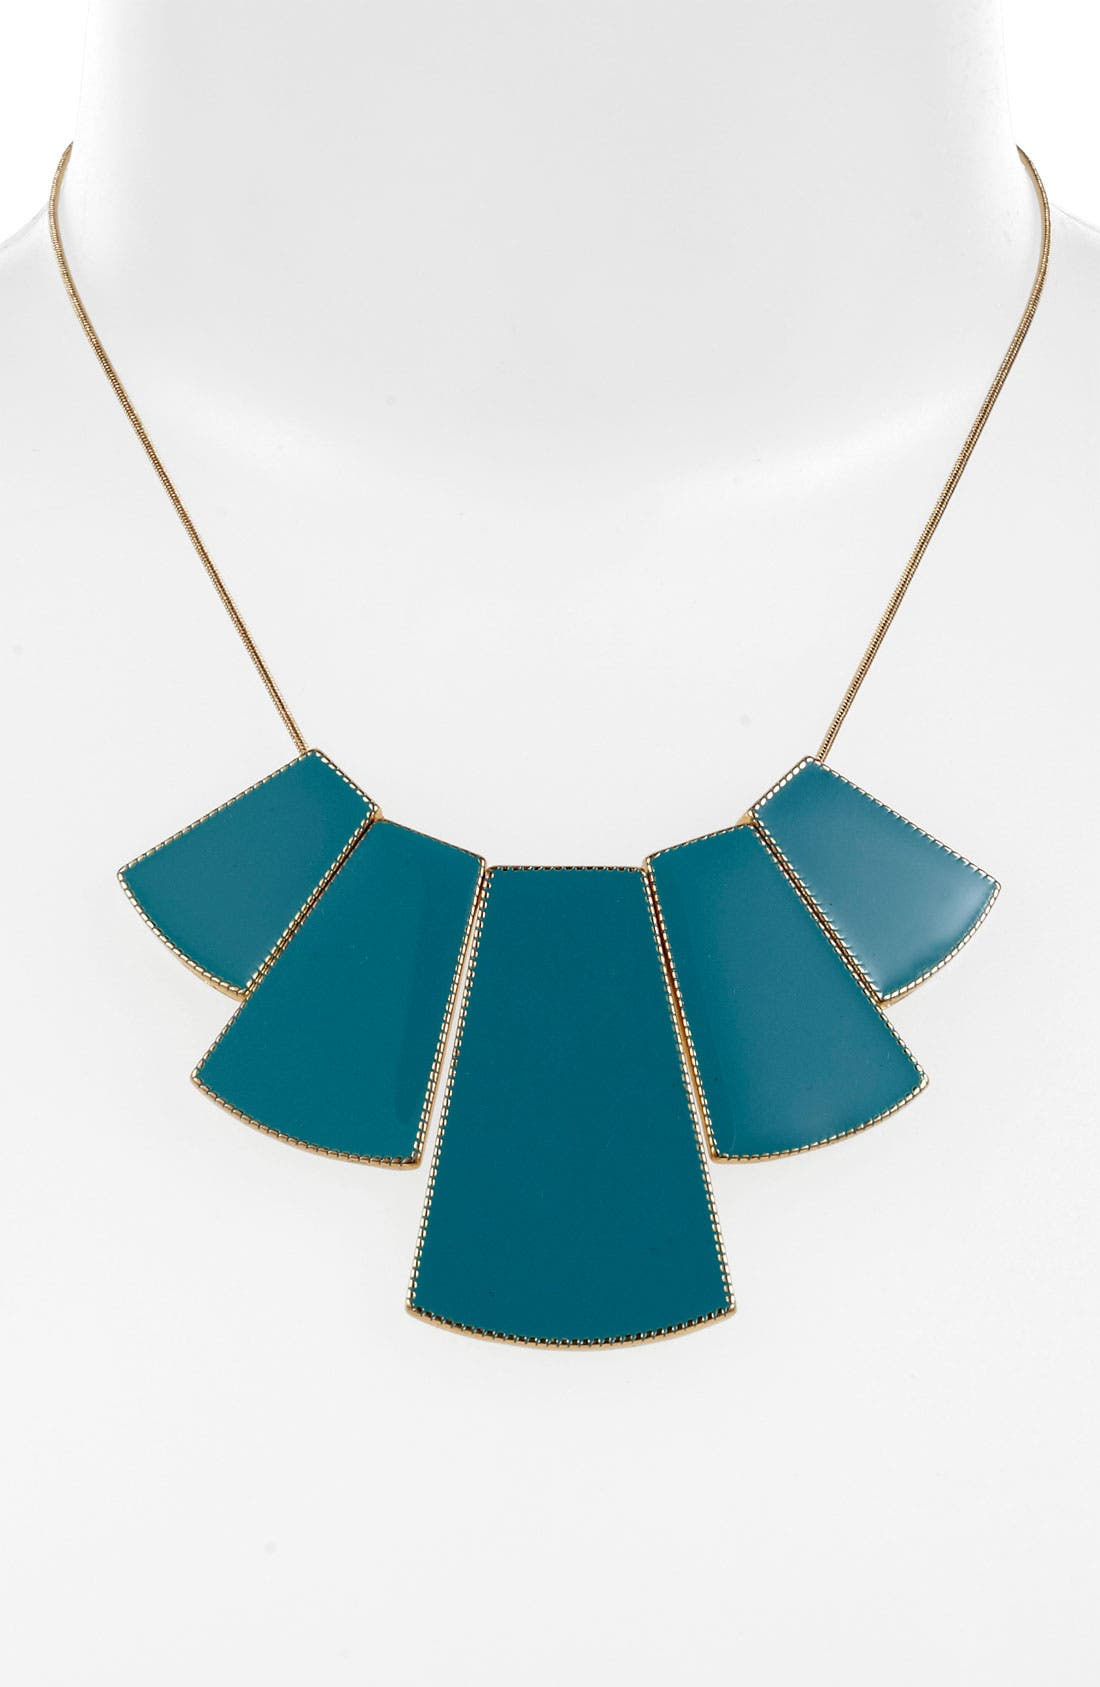 Alternate Image 1 Selected - Carole Enamel Bib Necklace